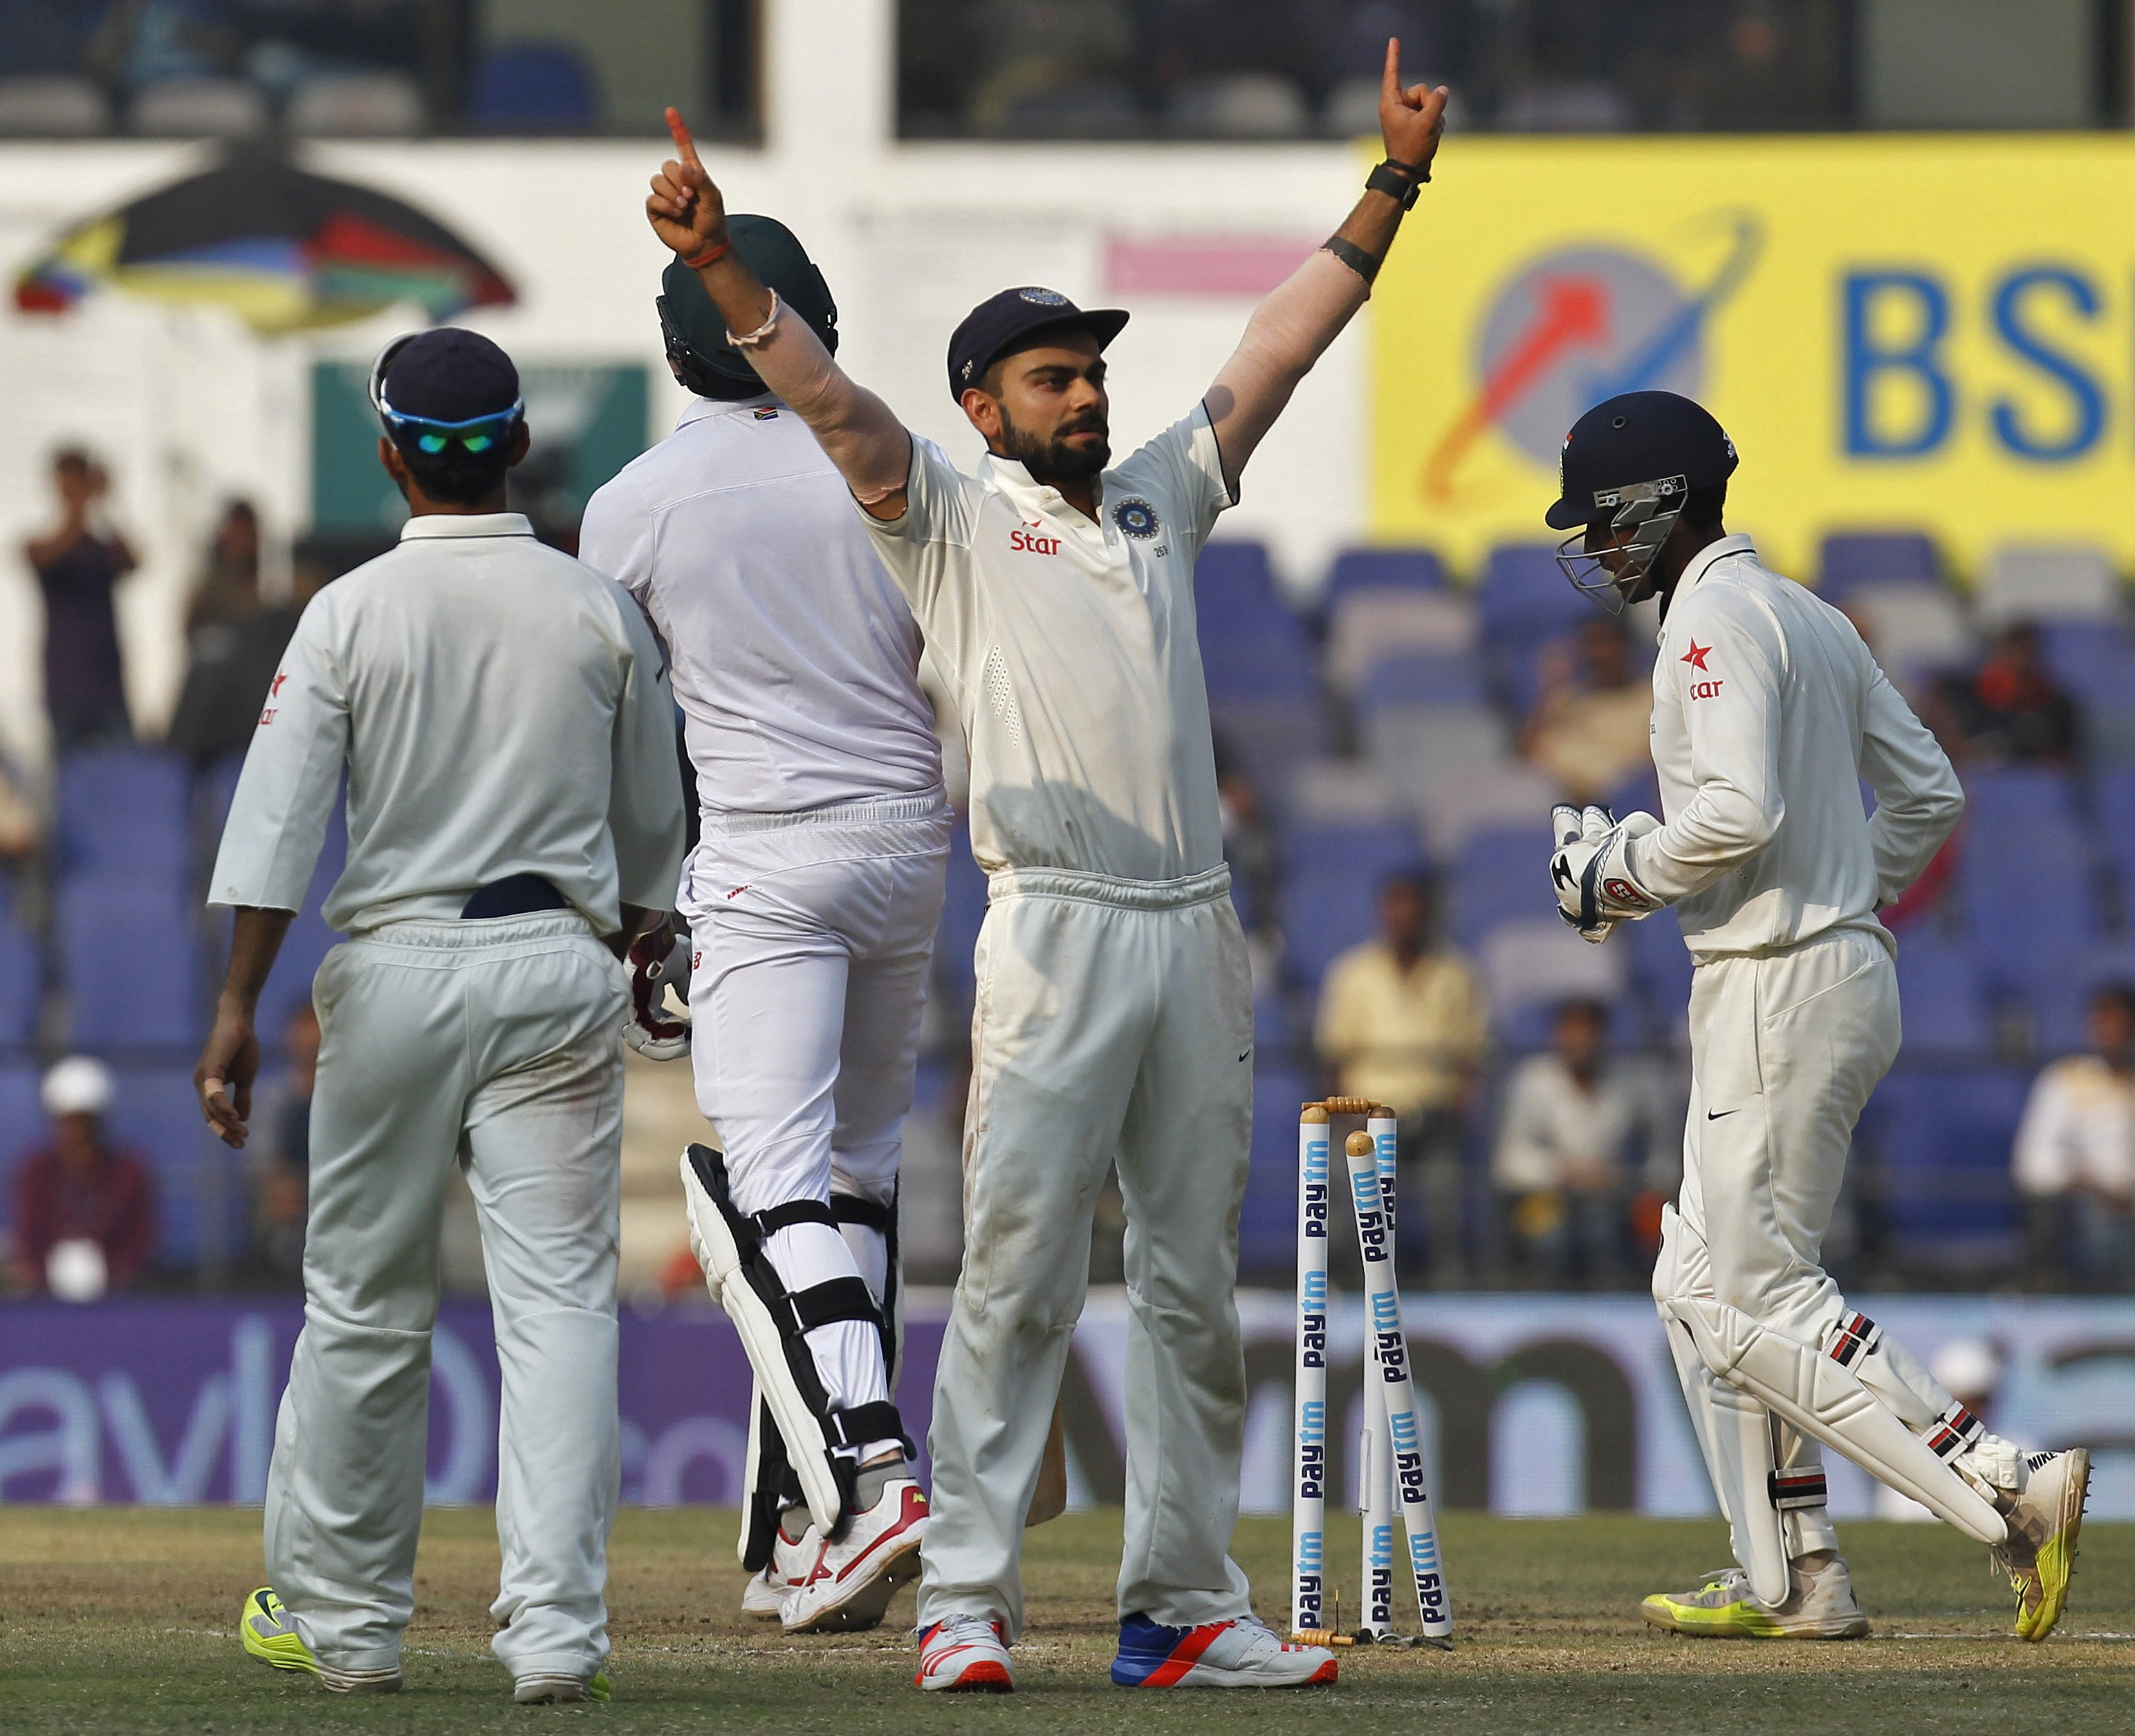 India's captain Virat Kohli celebrates after their win over South Africa on the third day of their third test cricket match in Nagpur, India, November 27, 2015. REUTERS/Amit Dave